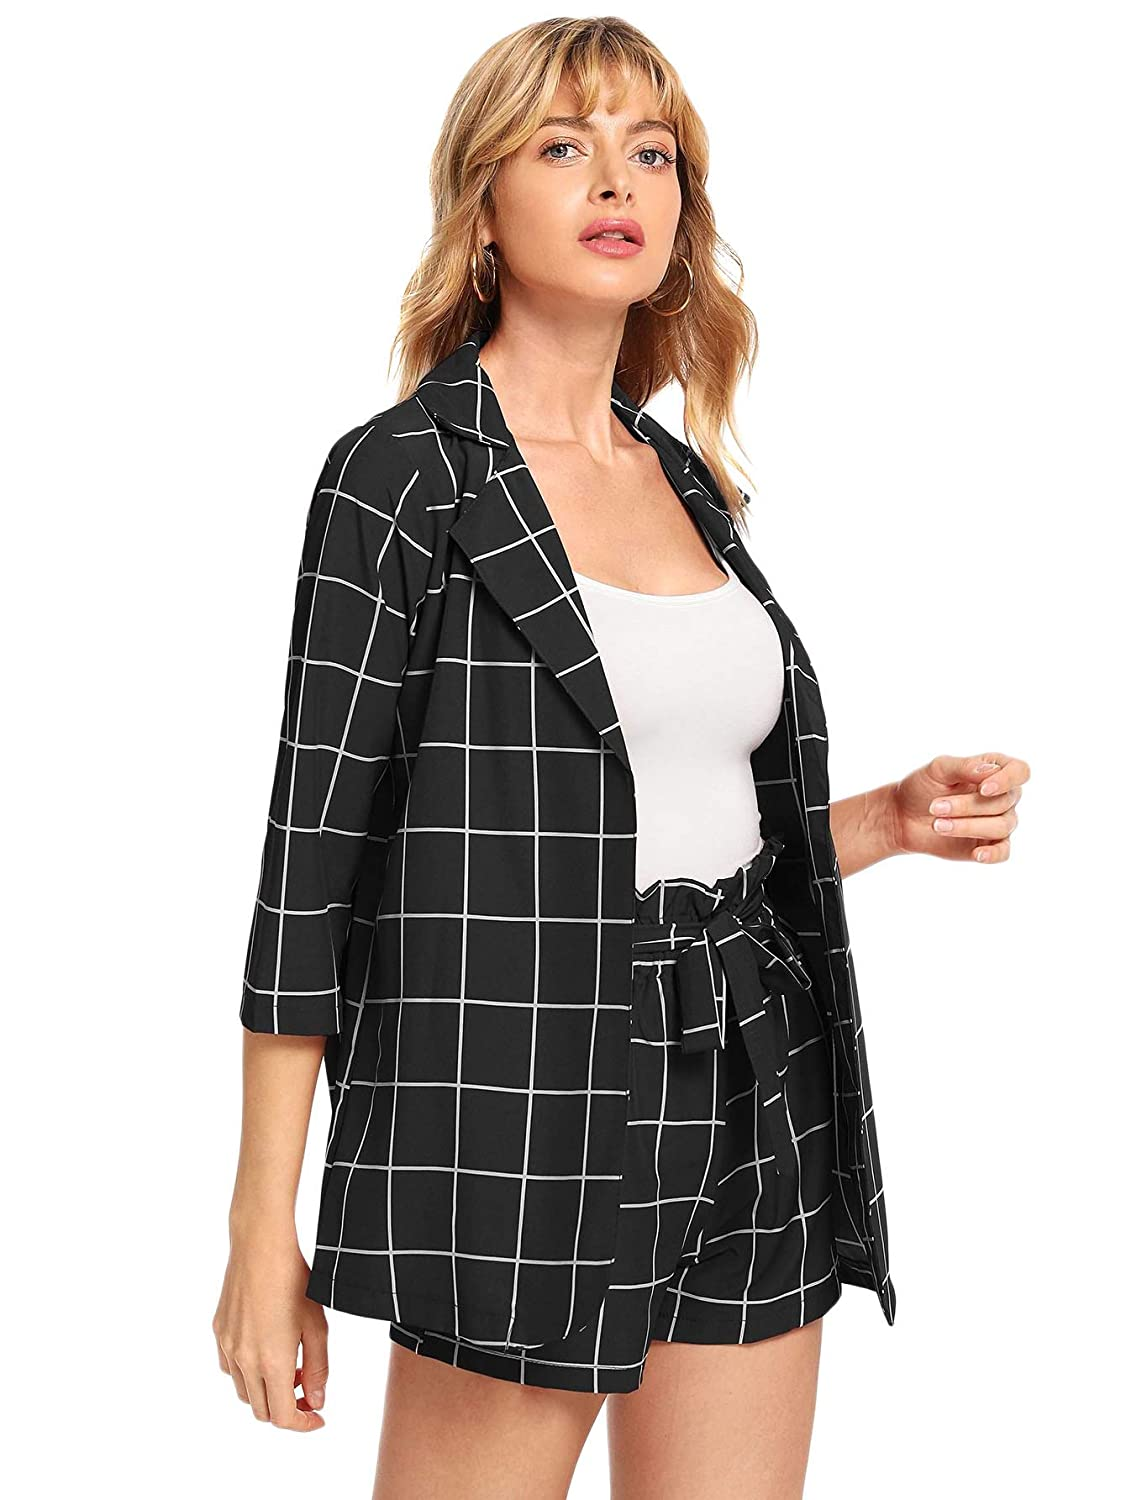 Sheinside Black And White Plaid Notched Blazers With Self Tie Waist Shorts Women Kleidung & Accessoires